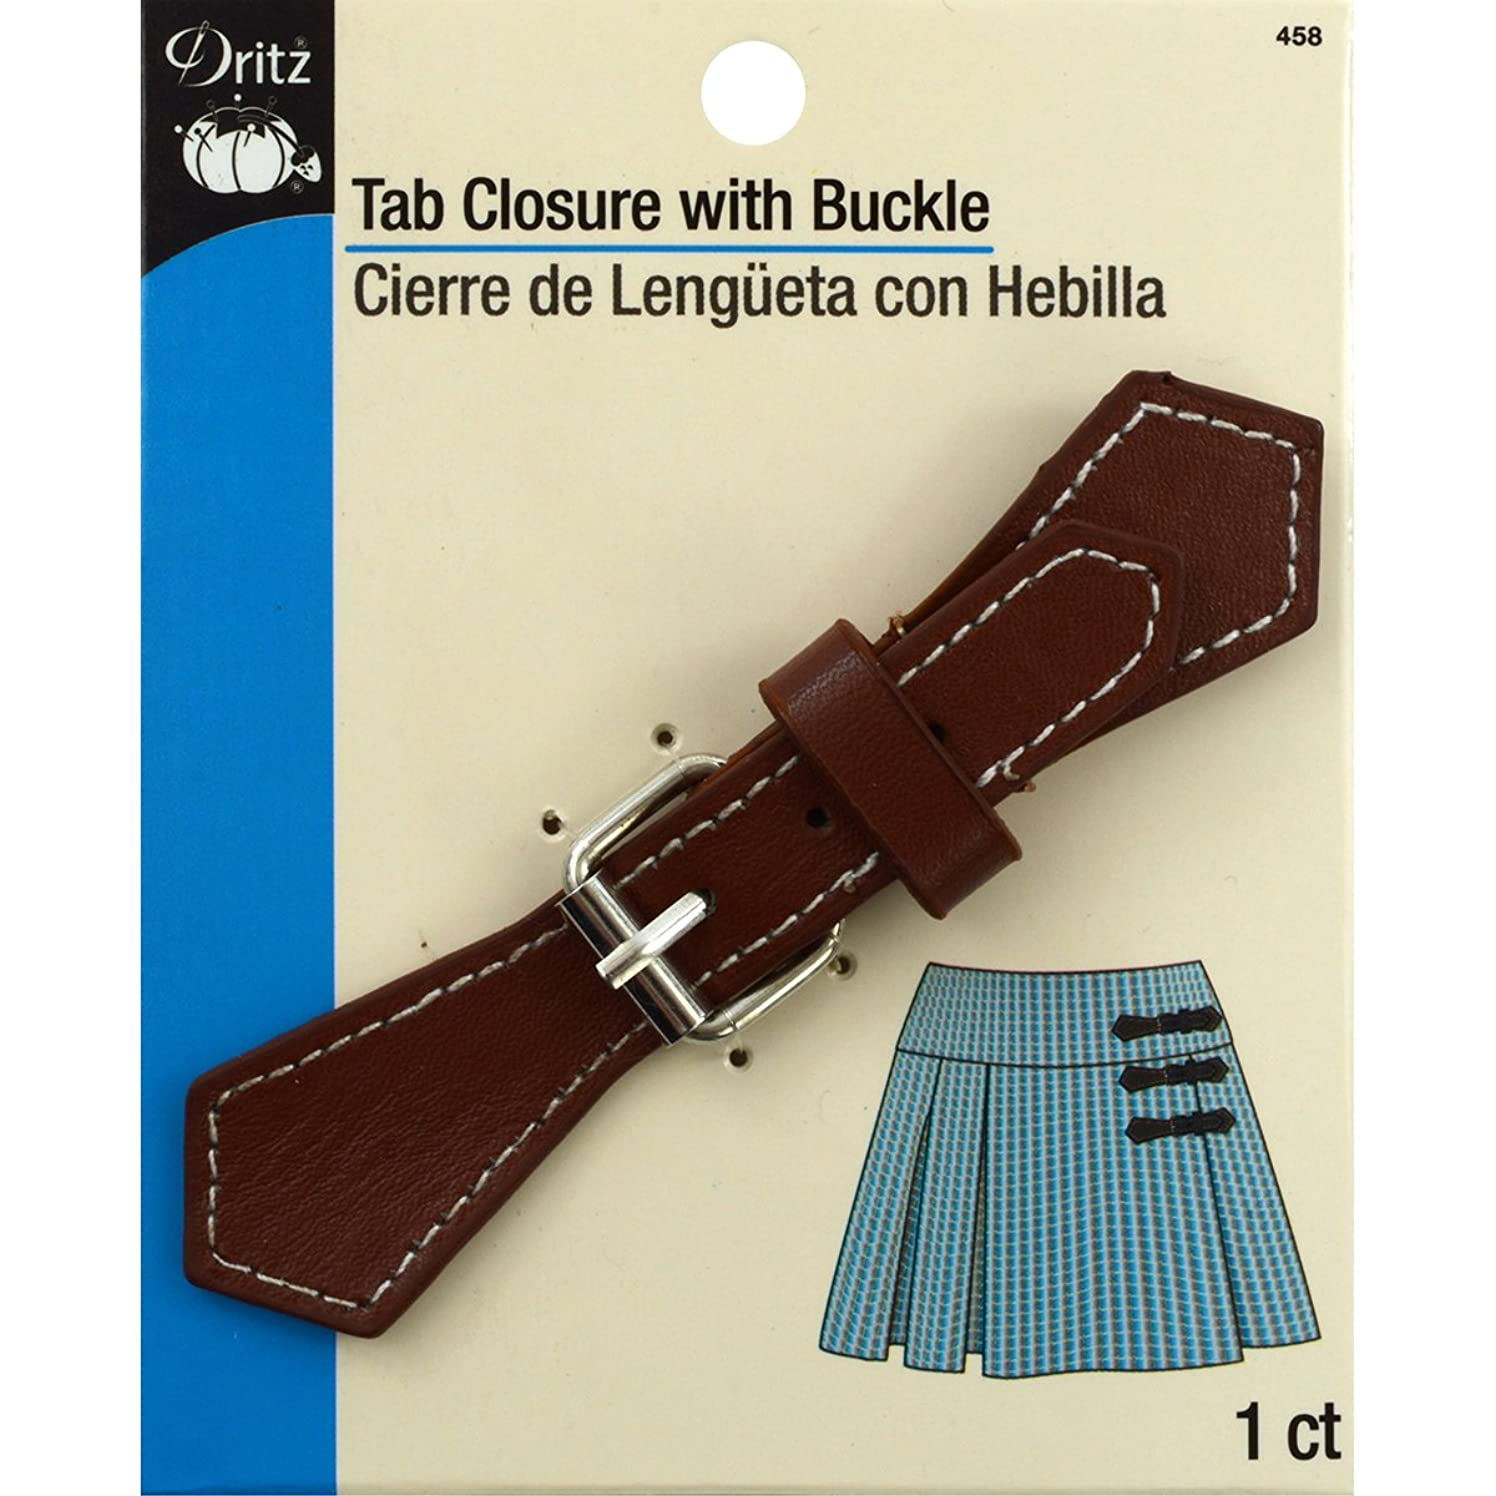 Dritz 458 Faux Leather Tab Closure with Buckle, Brown